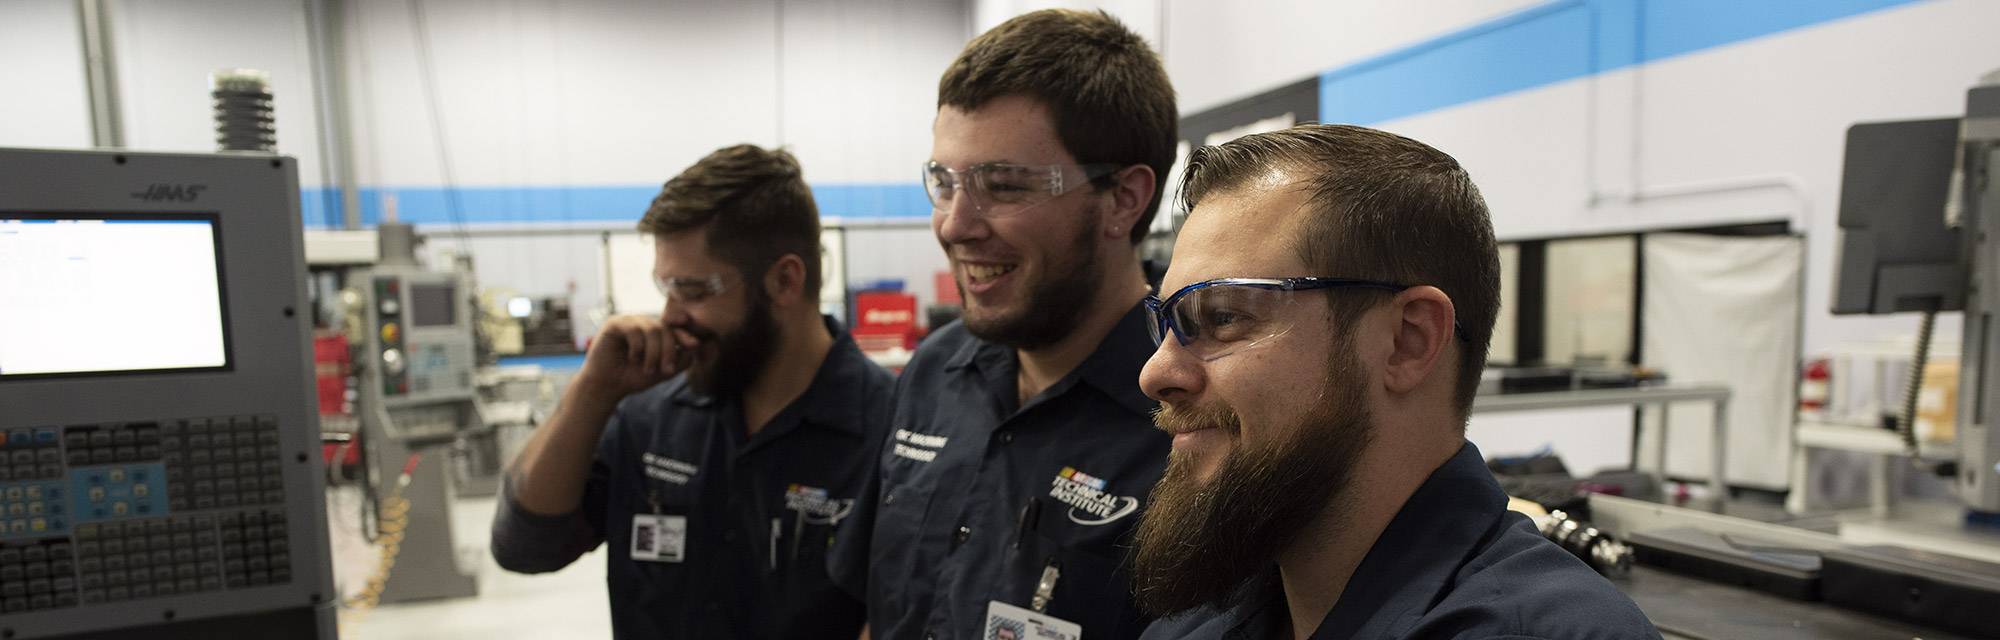 Students smiling in training